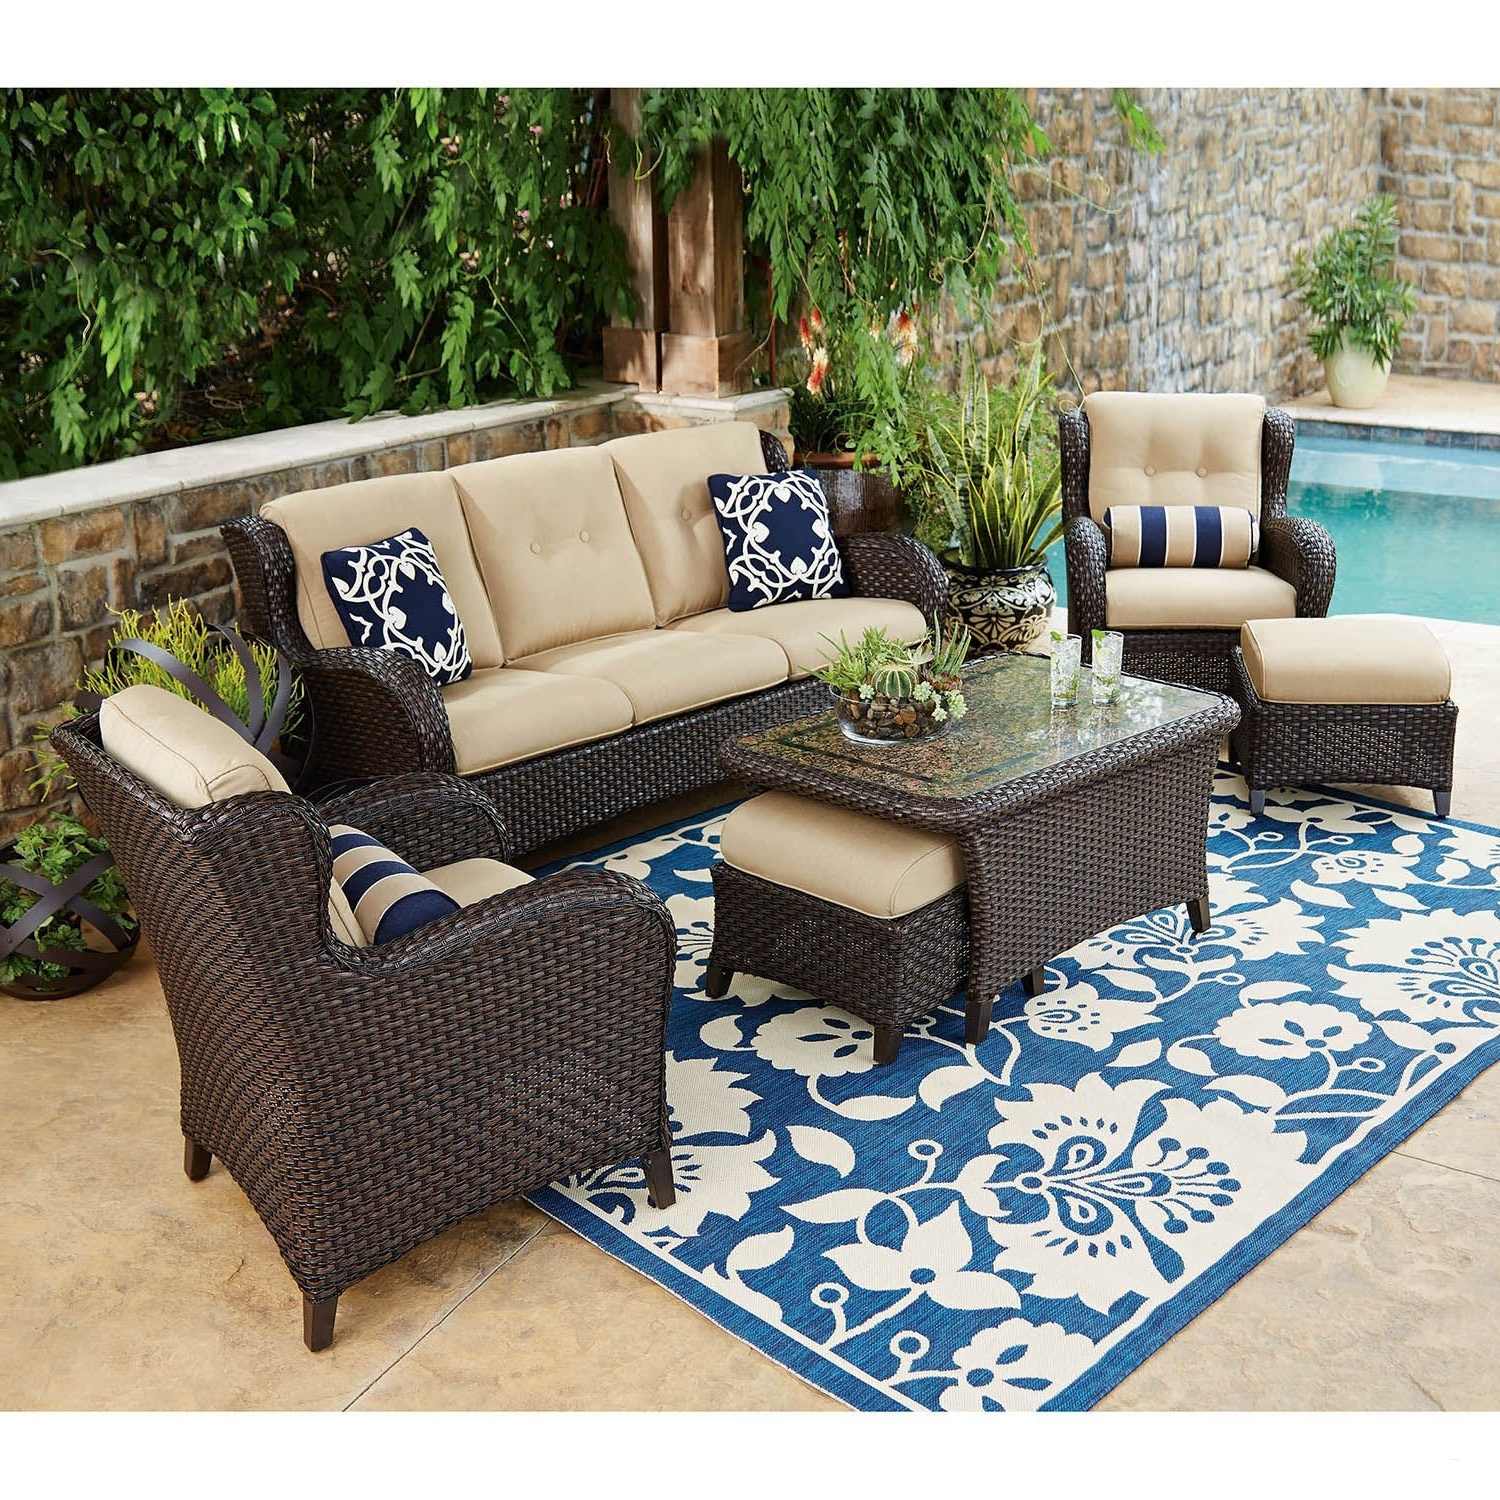 Kohls Patio Umbrellas Luxury Sonoma Patio Furniture Best Chair 49 Pertaining To Well Known Kohls Patio Umbrellas (Gallery 8 of 20)